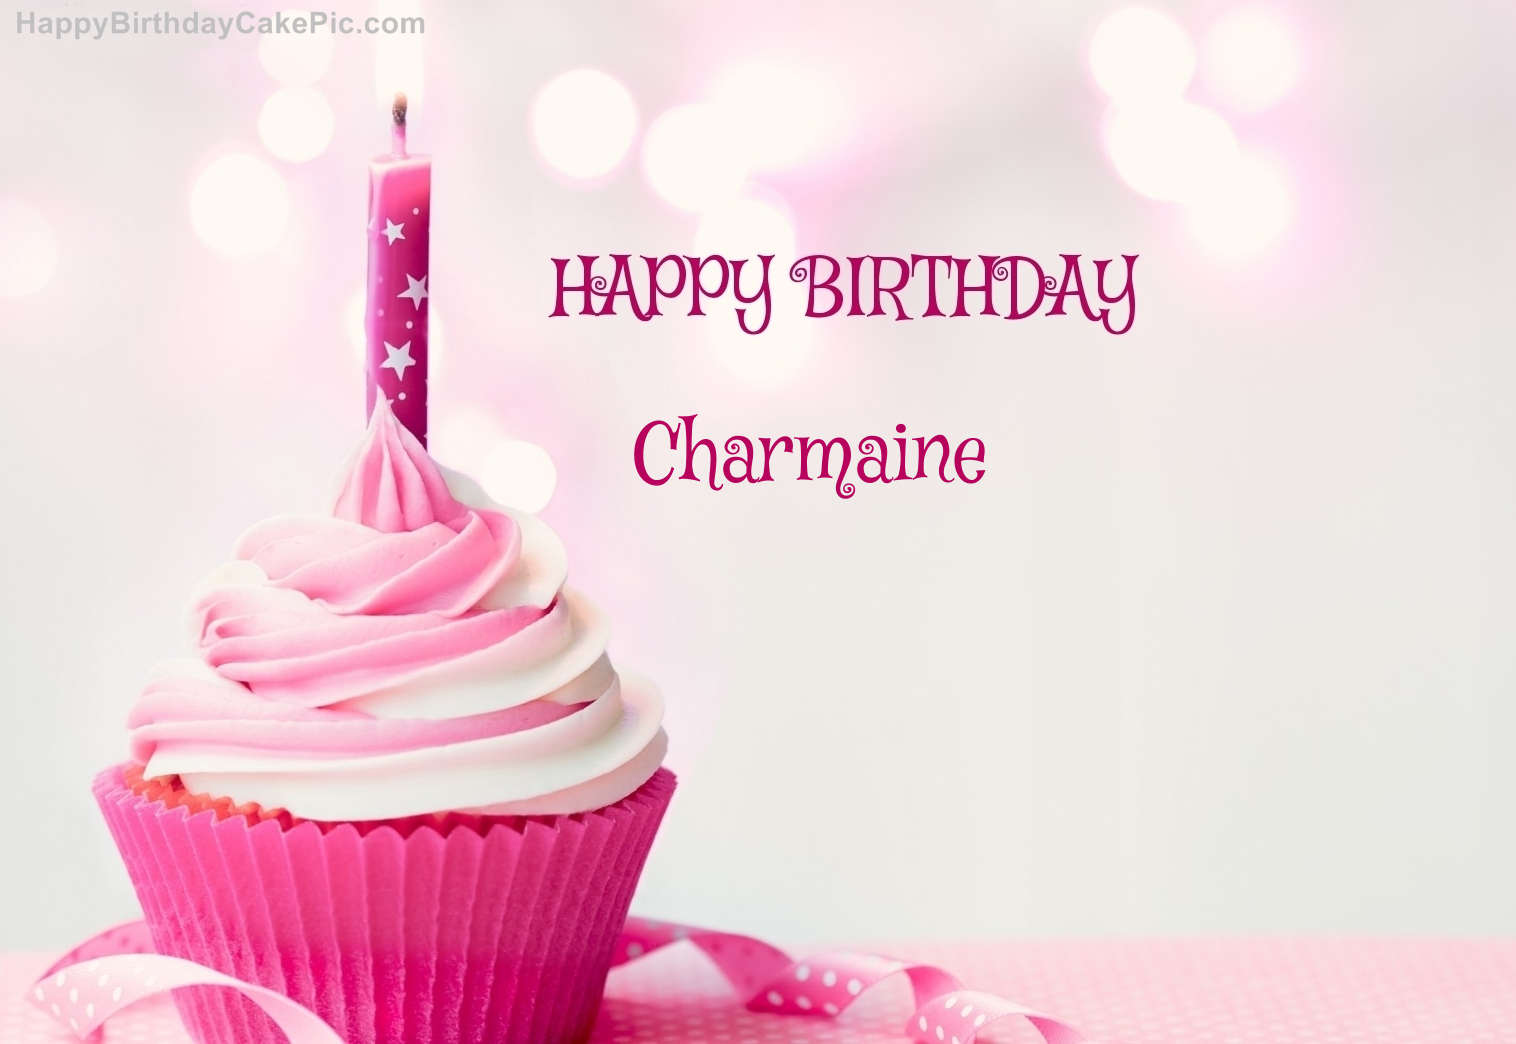 Happy Birthday Cupcake Candle Pink Cake For Charmaine